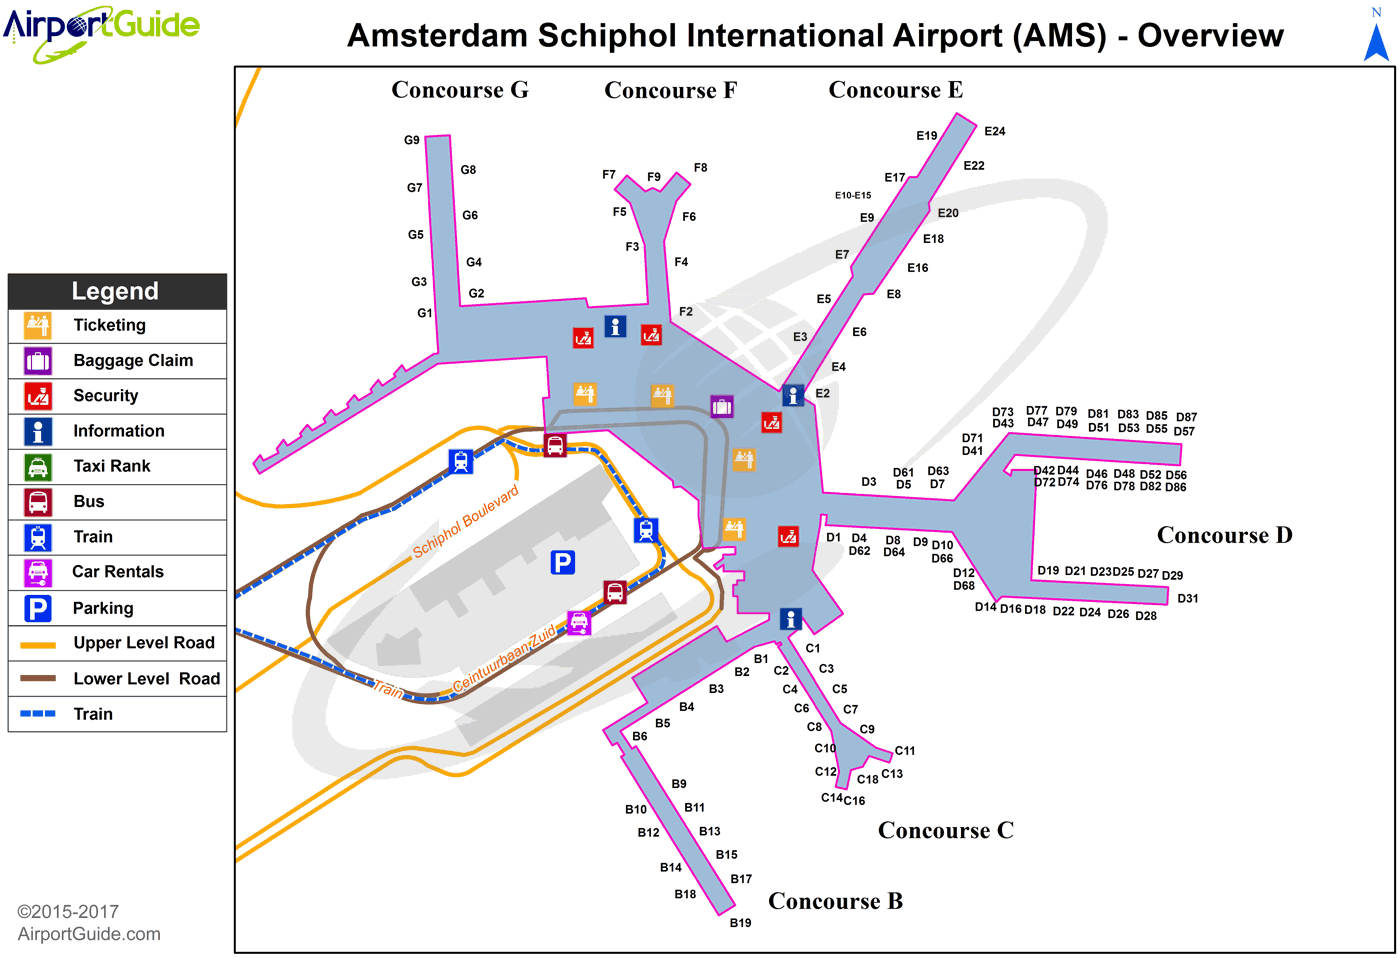 Schiphol Airport Map Amsterdam   Amsterdam Schiphol (AMS) Airport Terminal Maps  Schiphol Airport Map